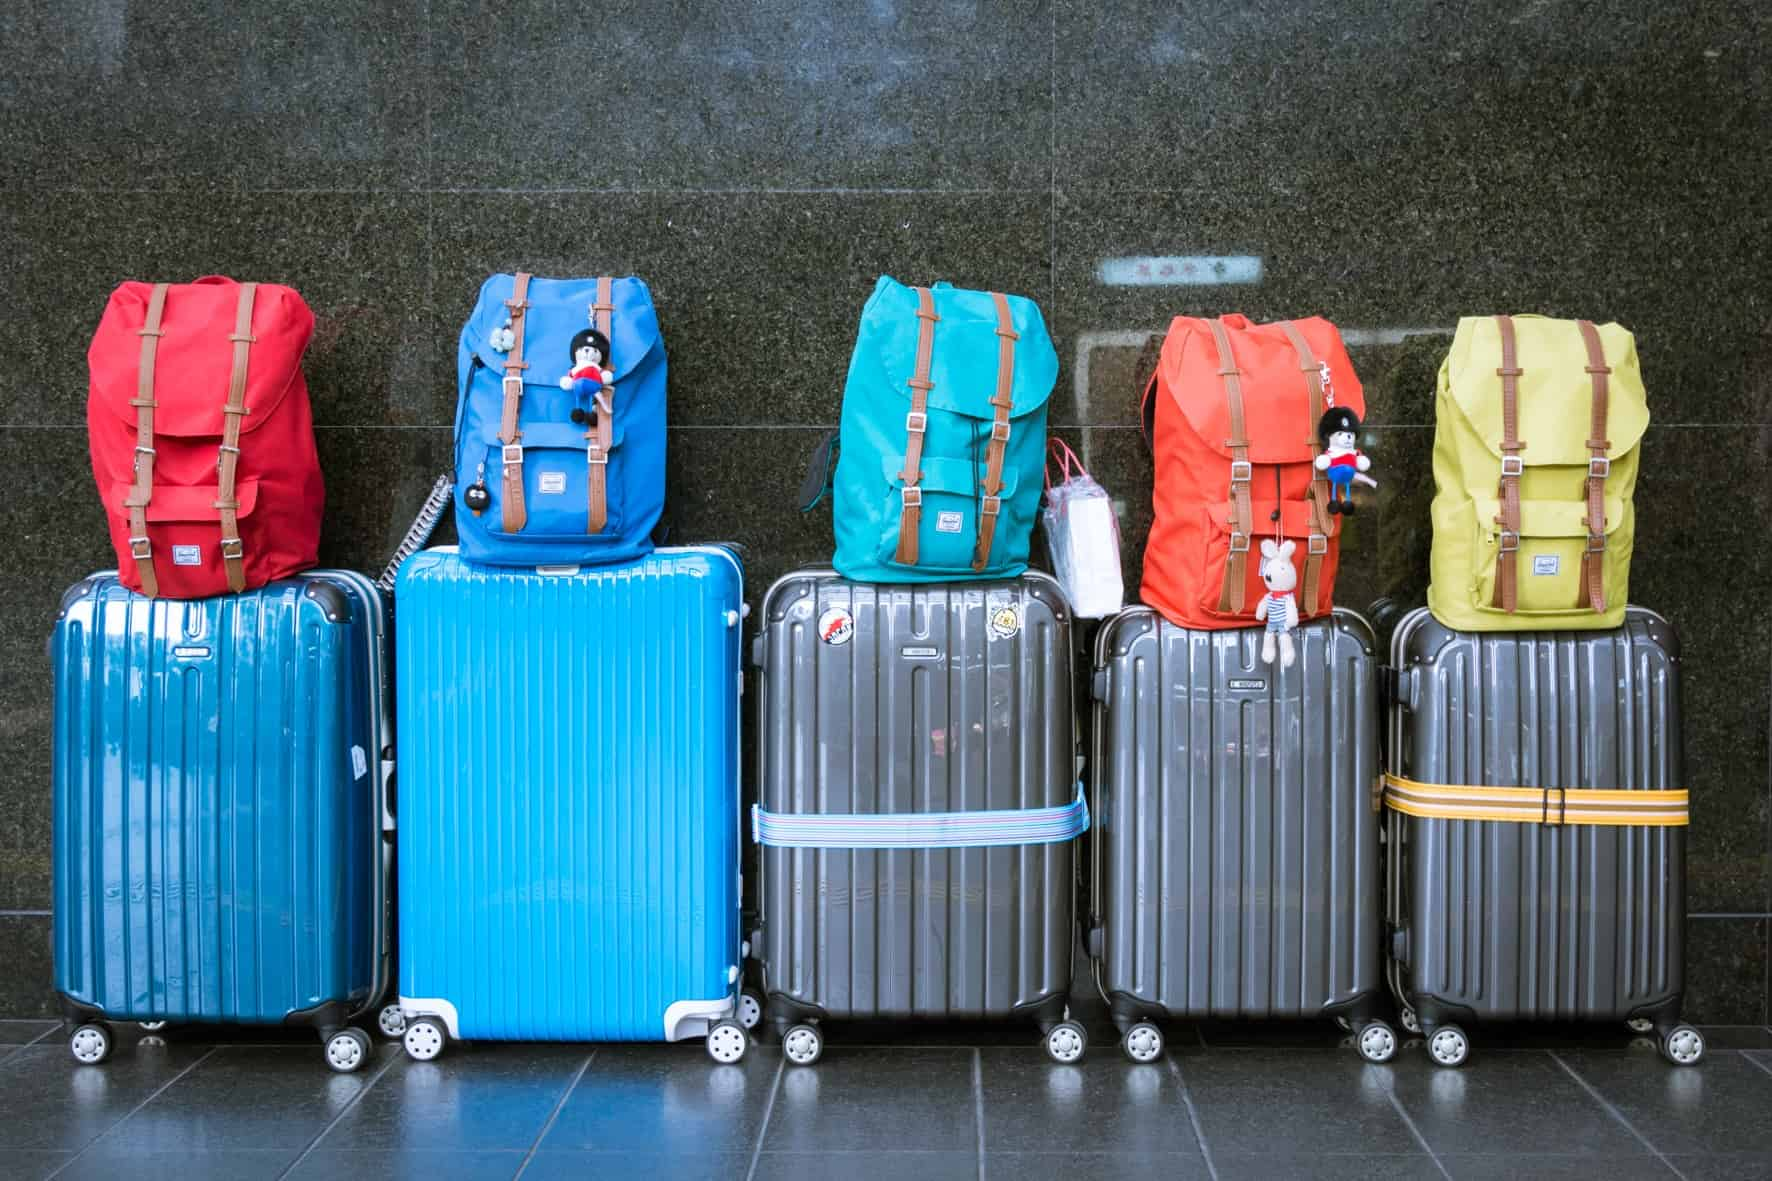 Pieces of luggage